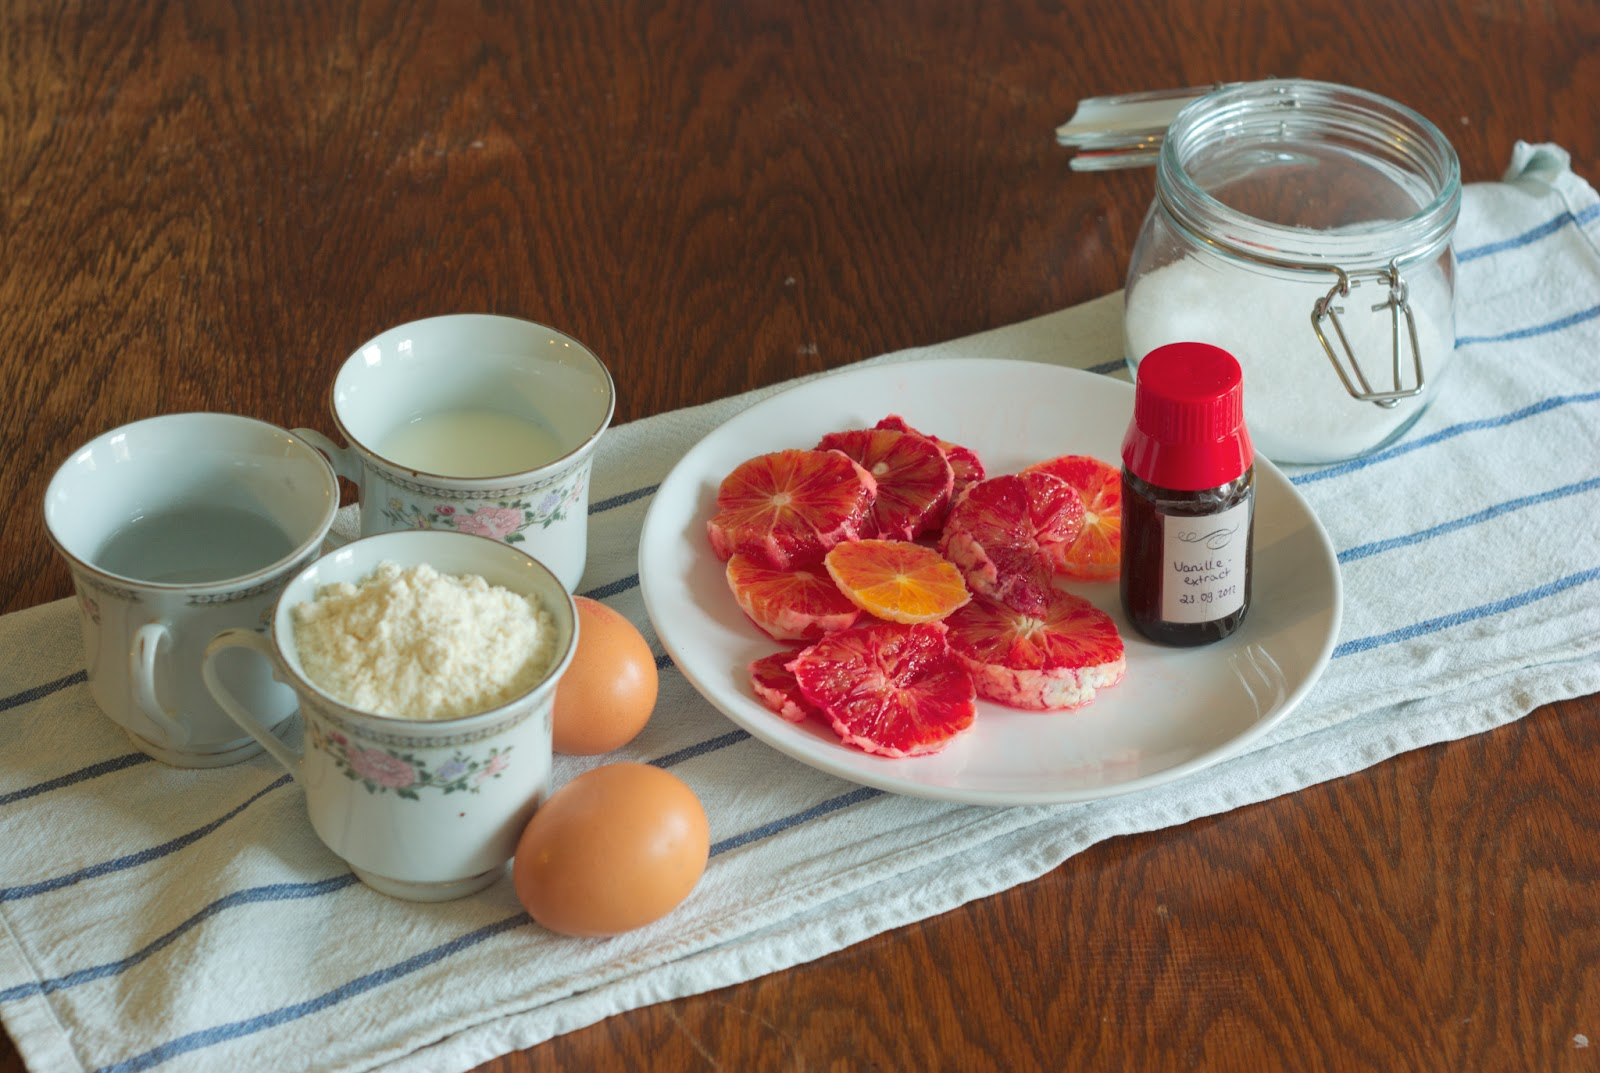 Cake and Julia: Rosewater Crepes with Blood Orange Compote